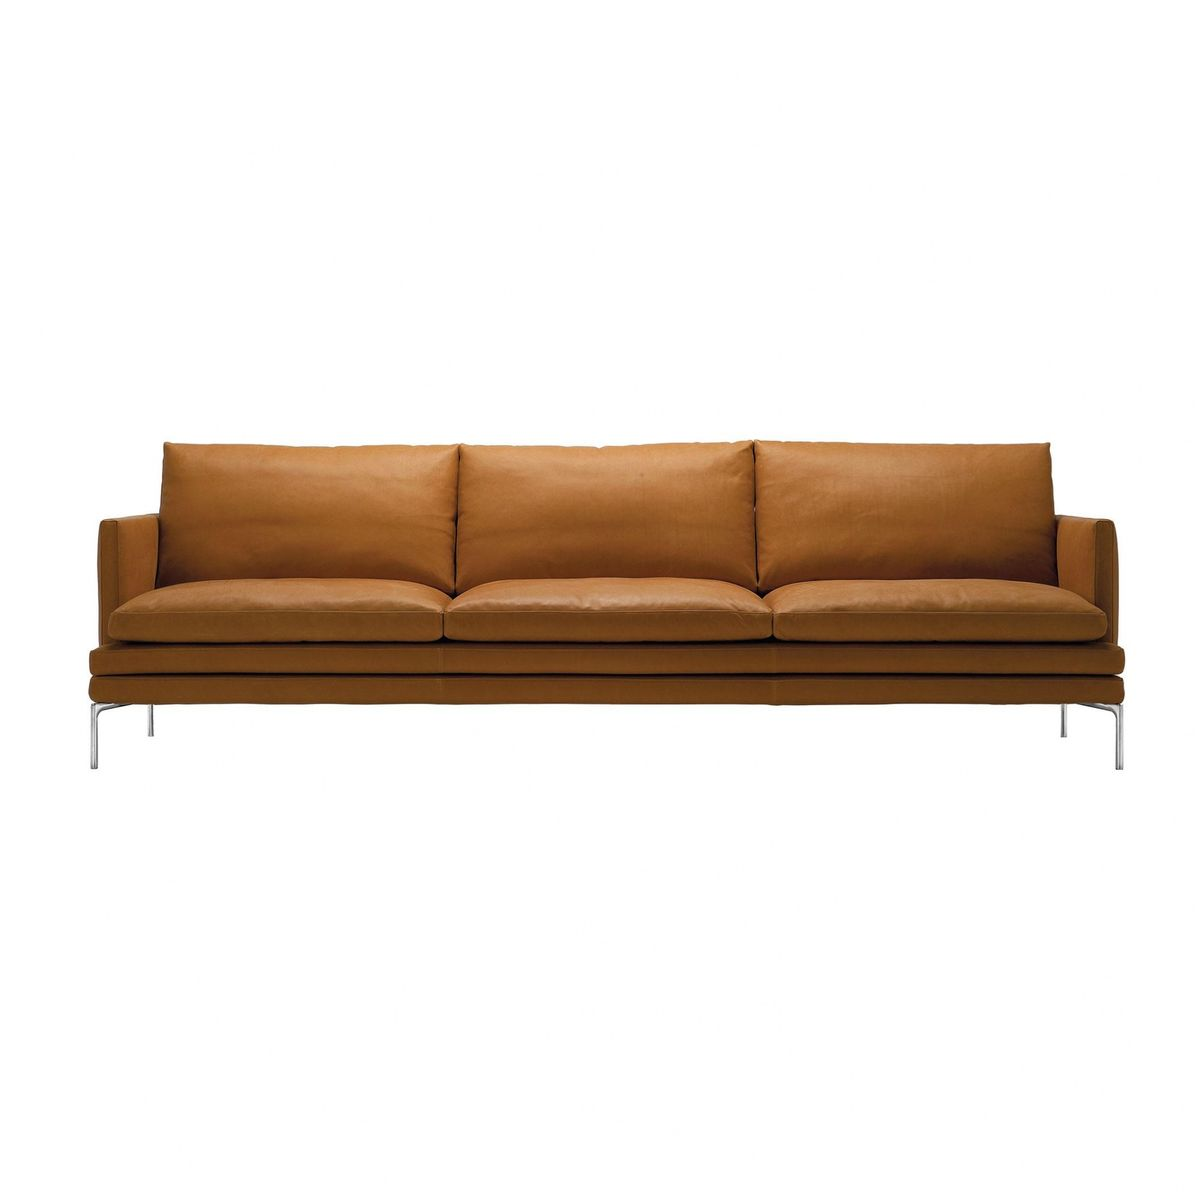 William 3 Sitzer Sofa Zanotta AmbienteDirectcom